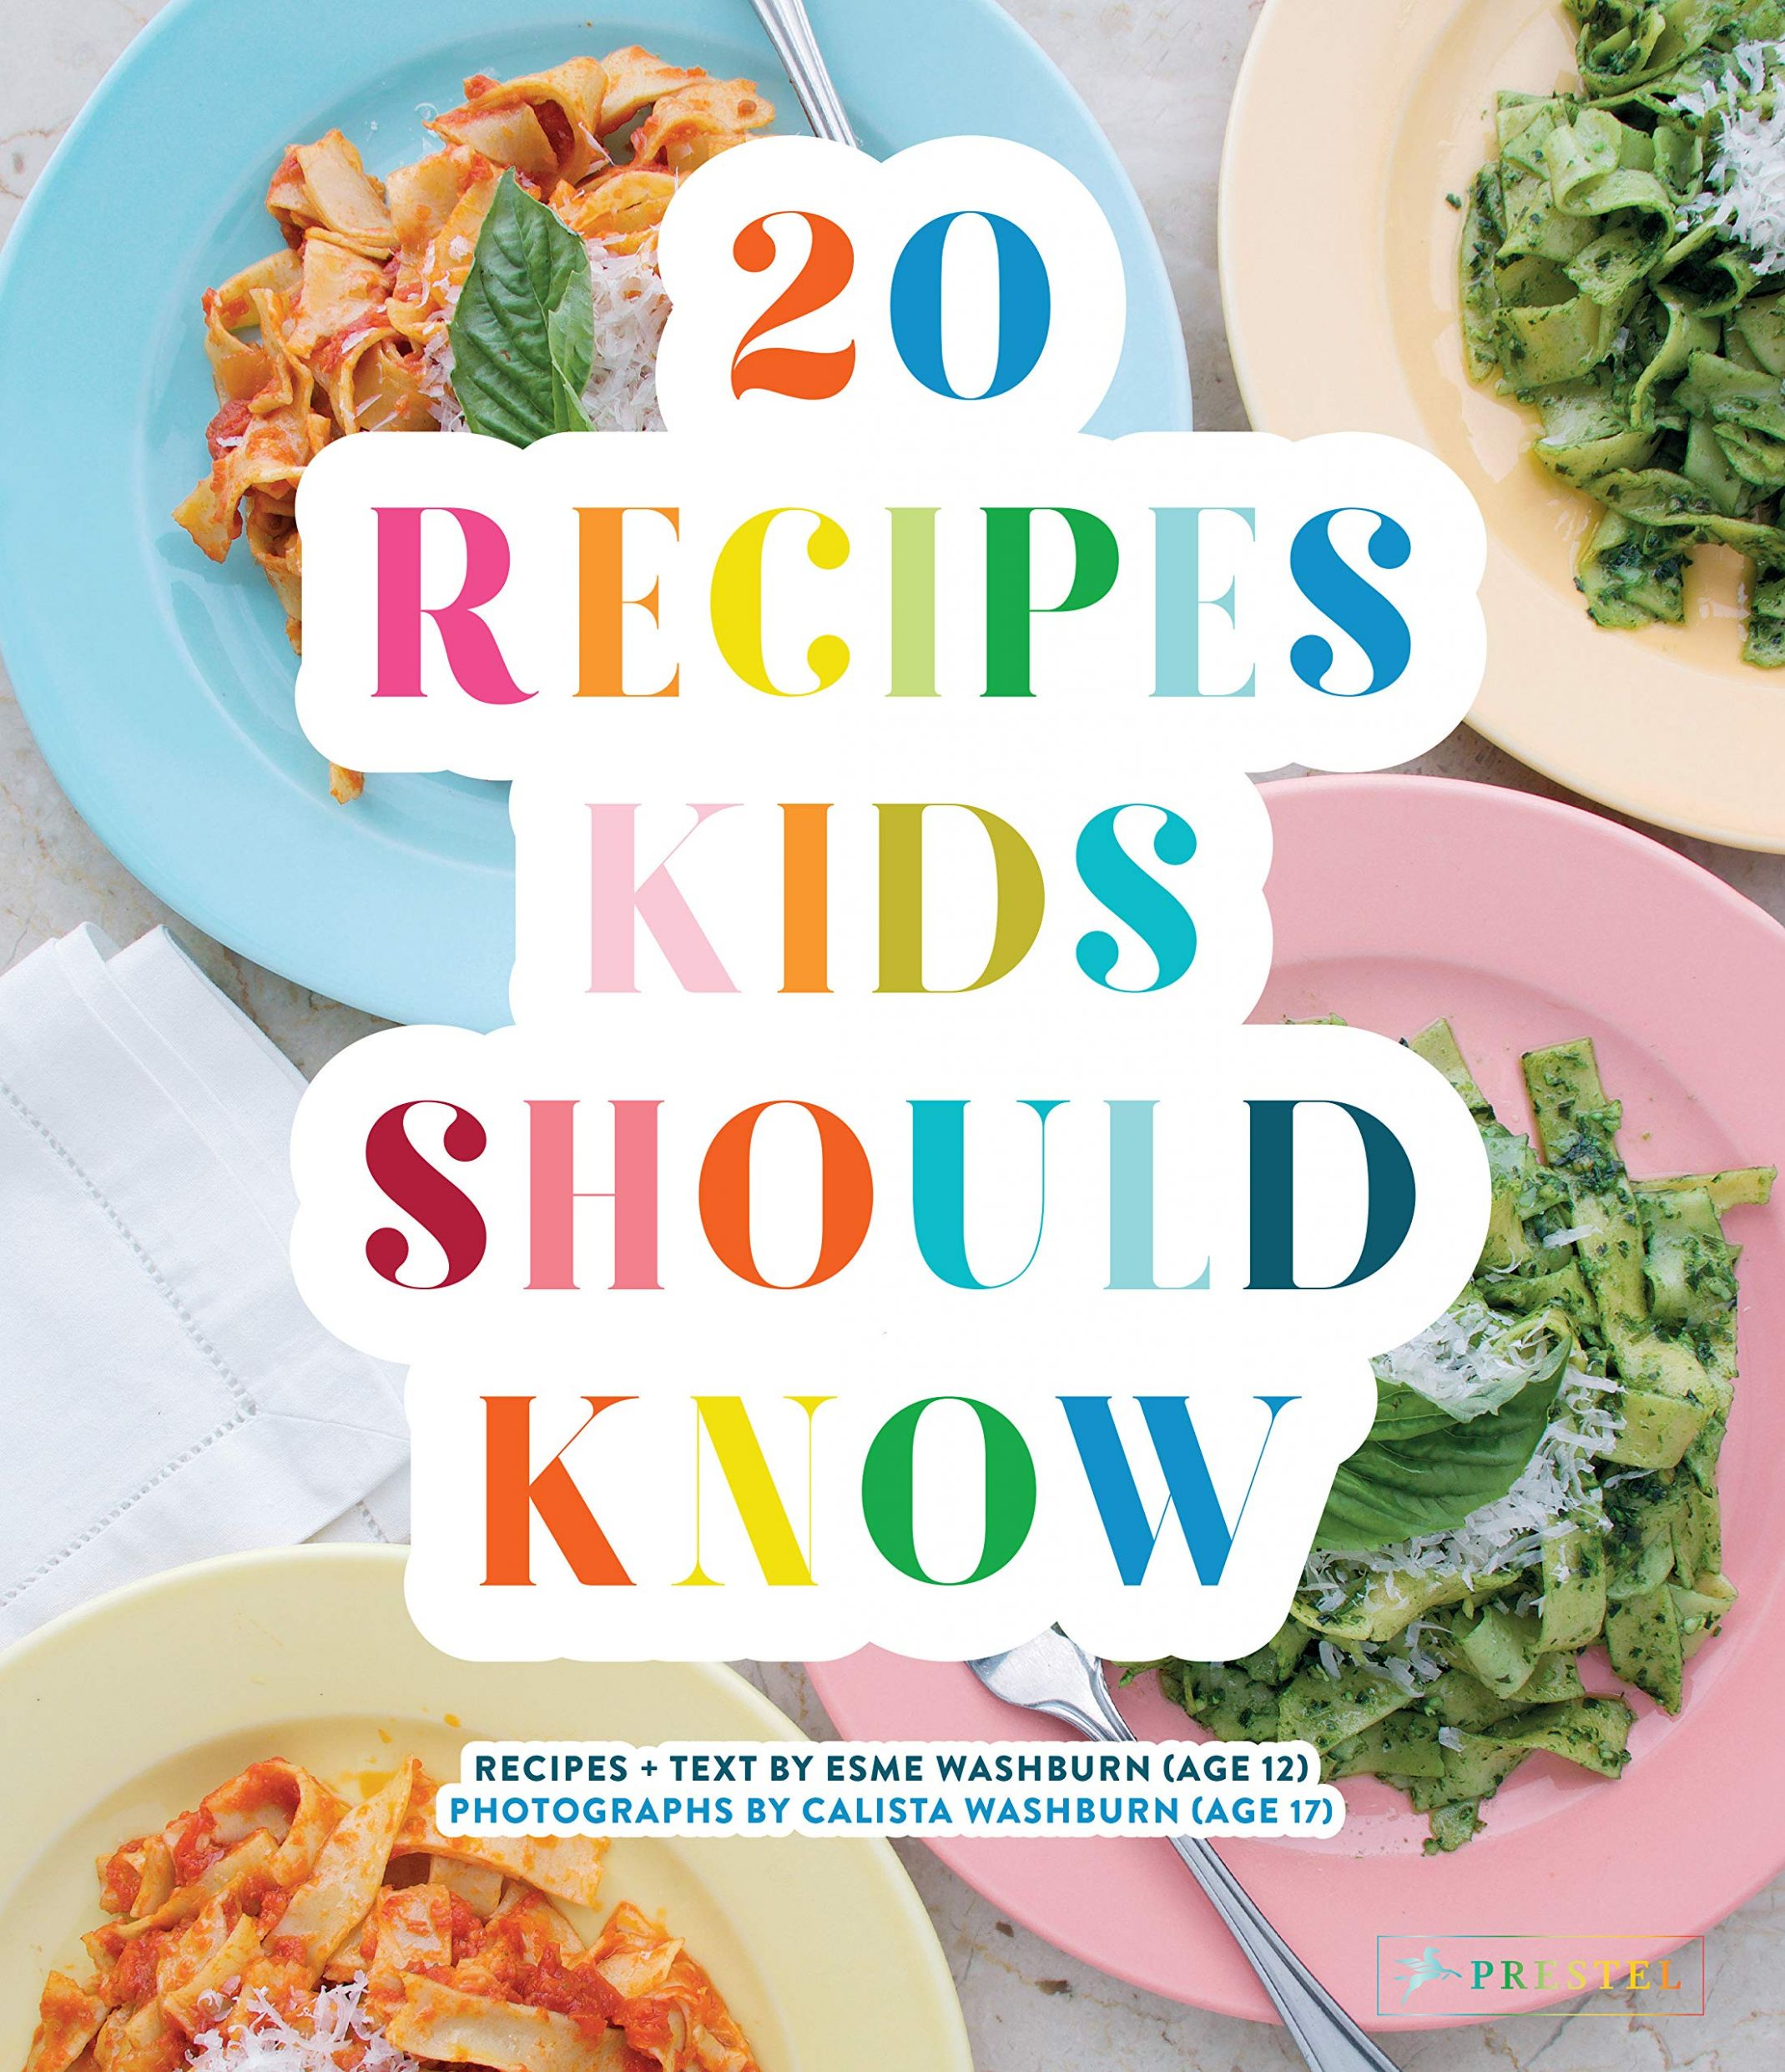 Amazon.com: 9 Recipes Kids Should Know (9): Esme ...